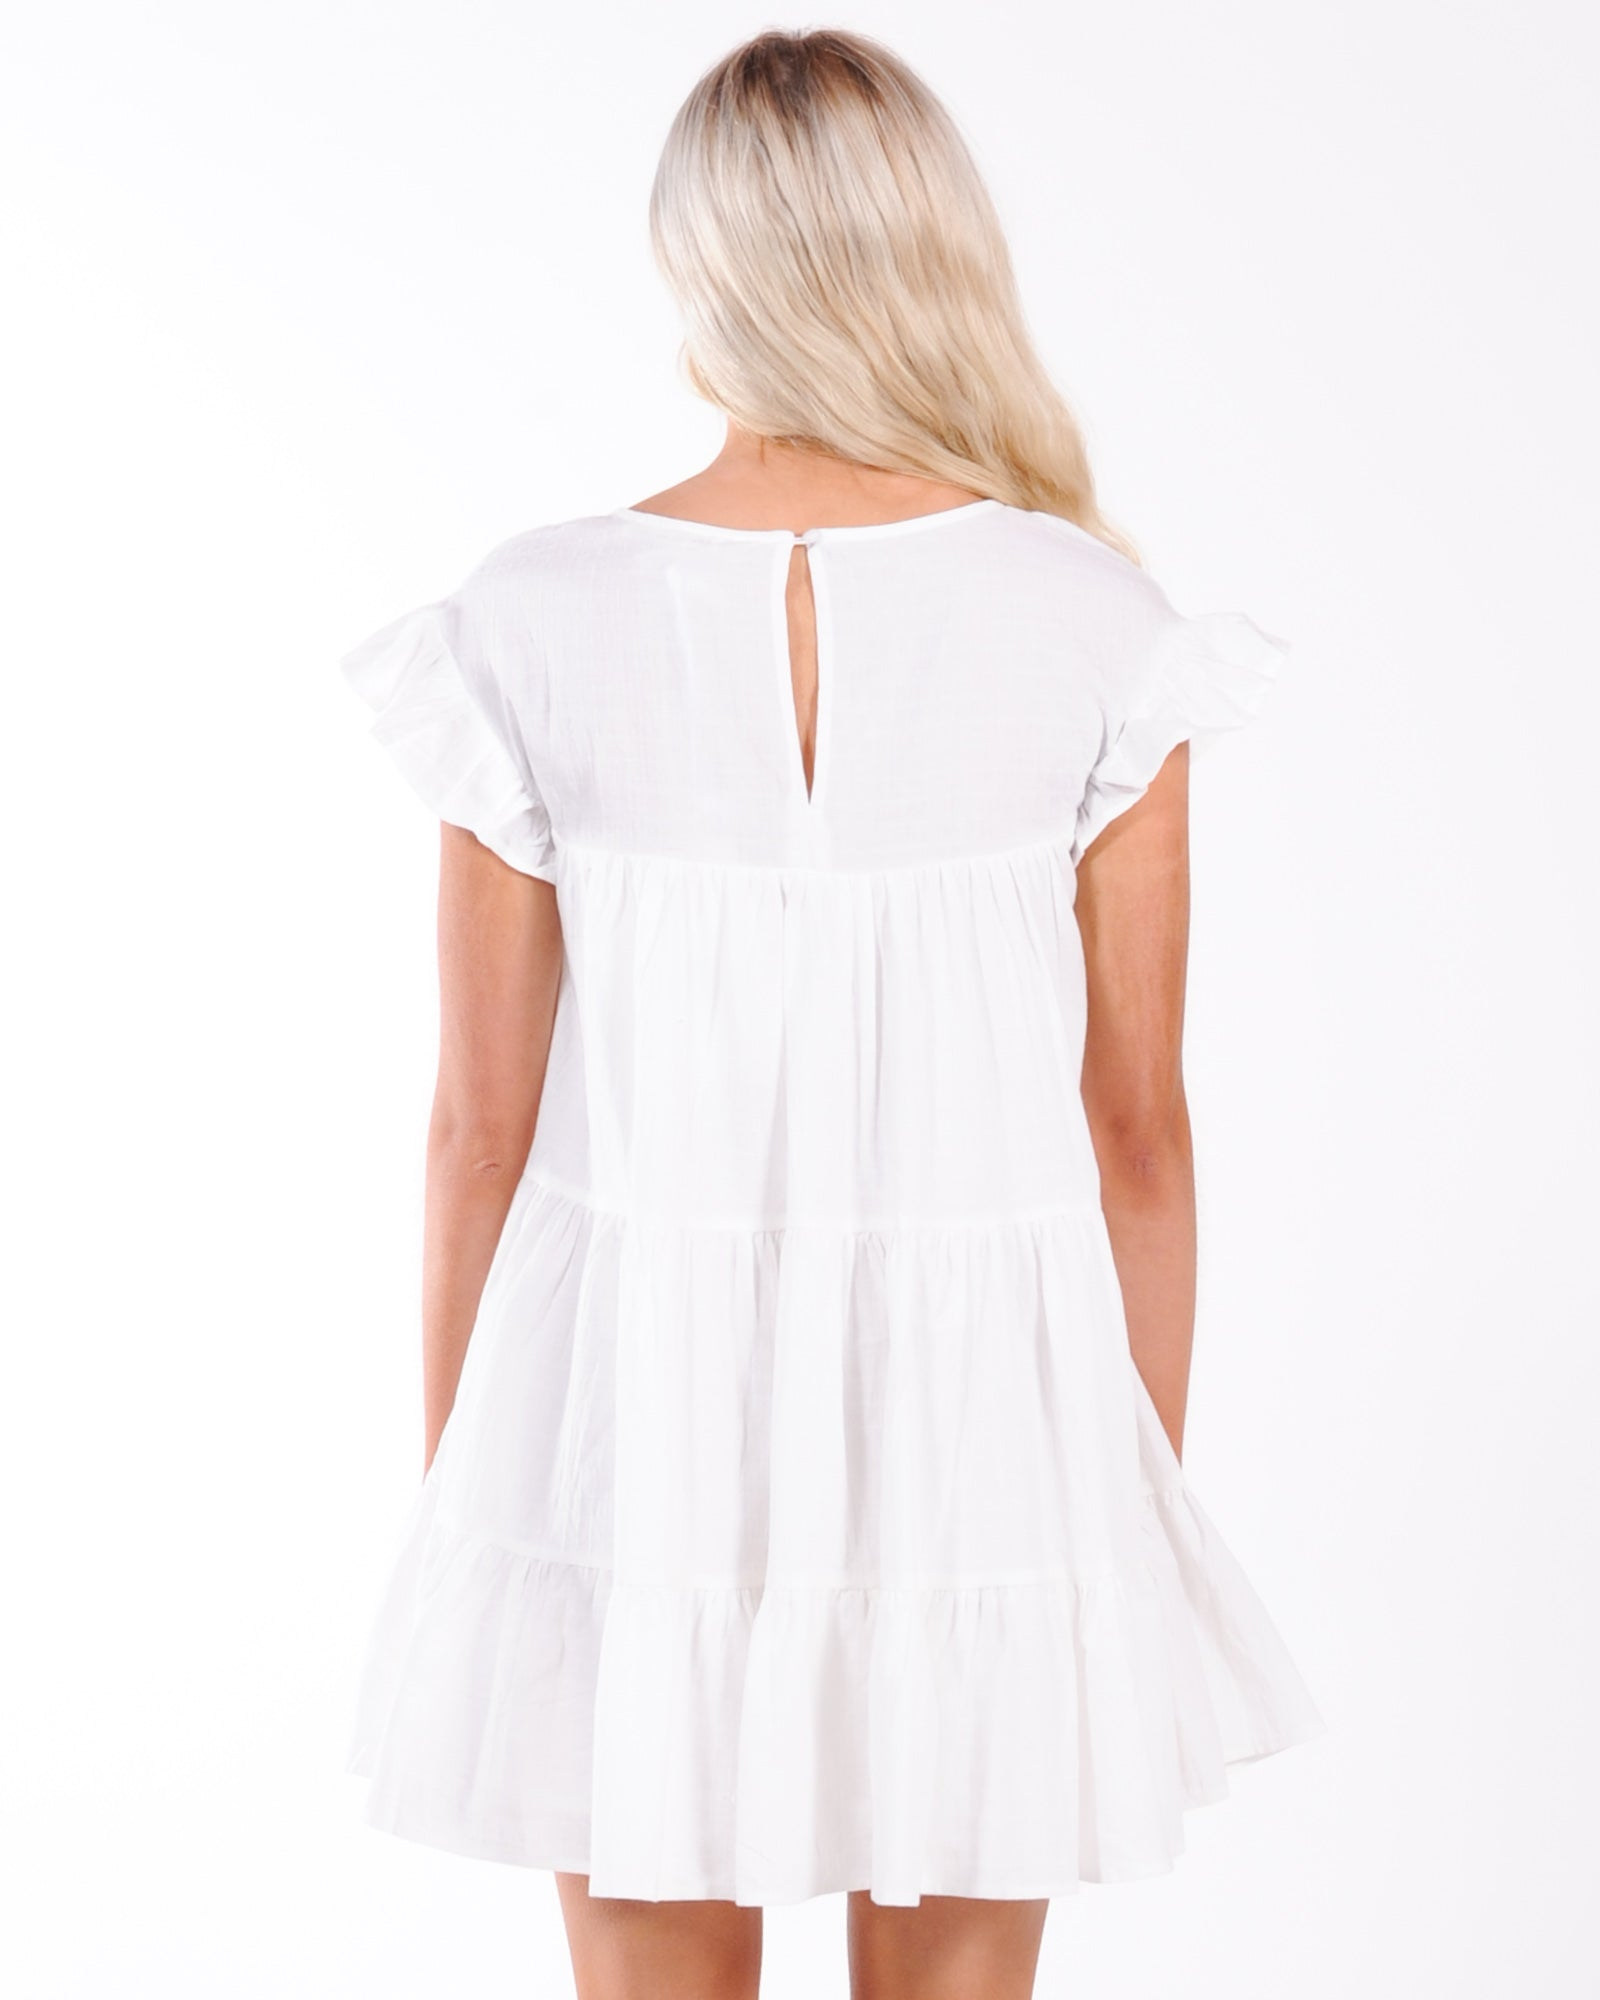 Garden Party Babydoll Dress - White